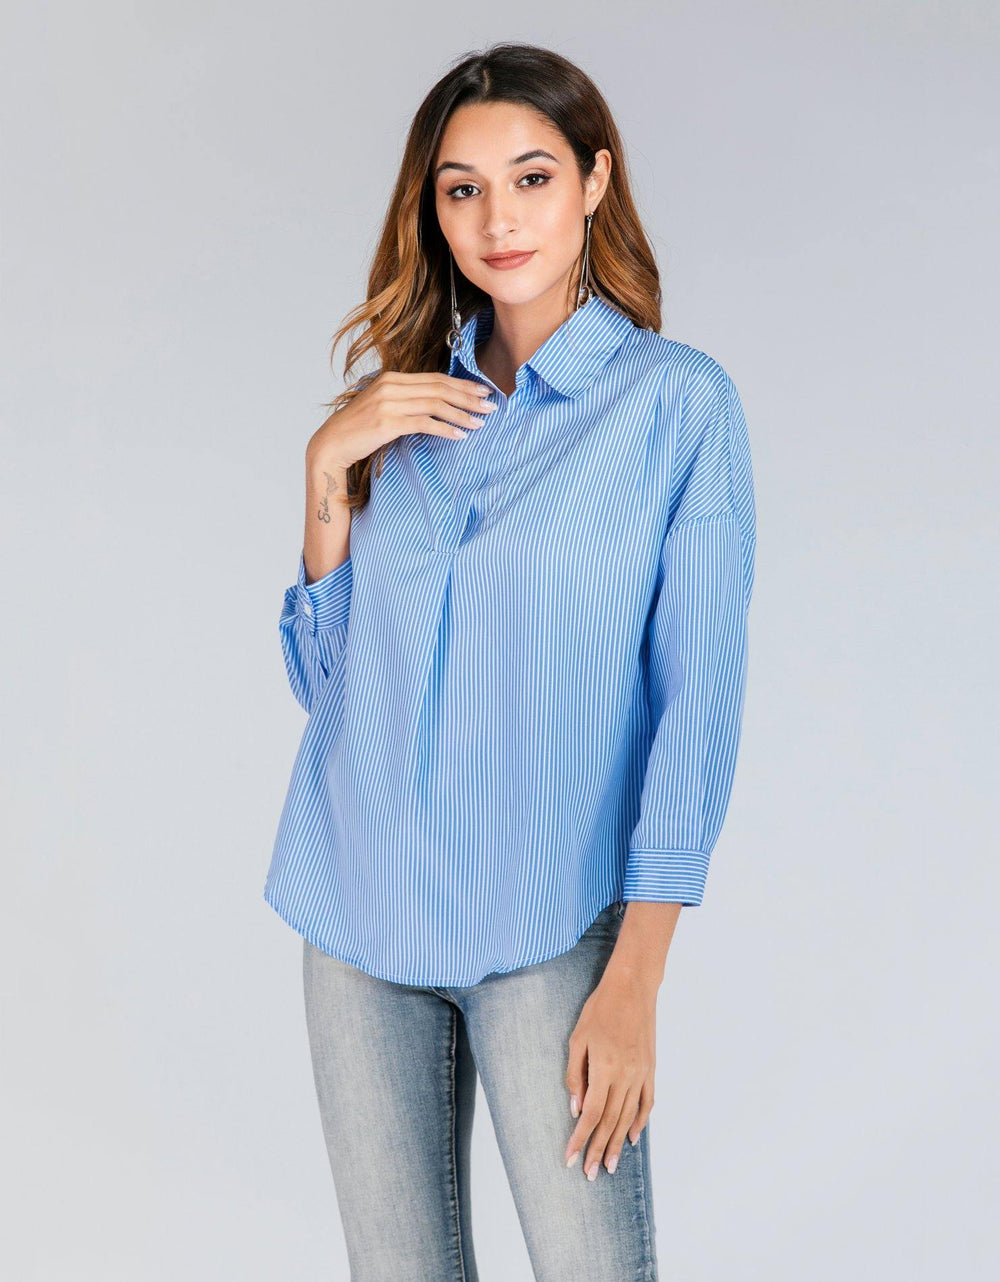 Bengal Stripes Collar Shirt - Brandsea UK